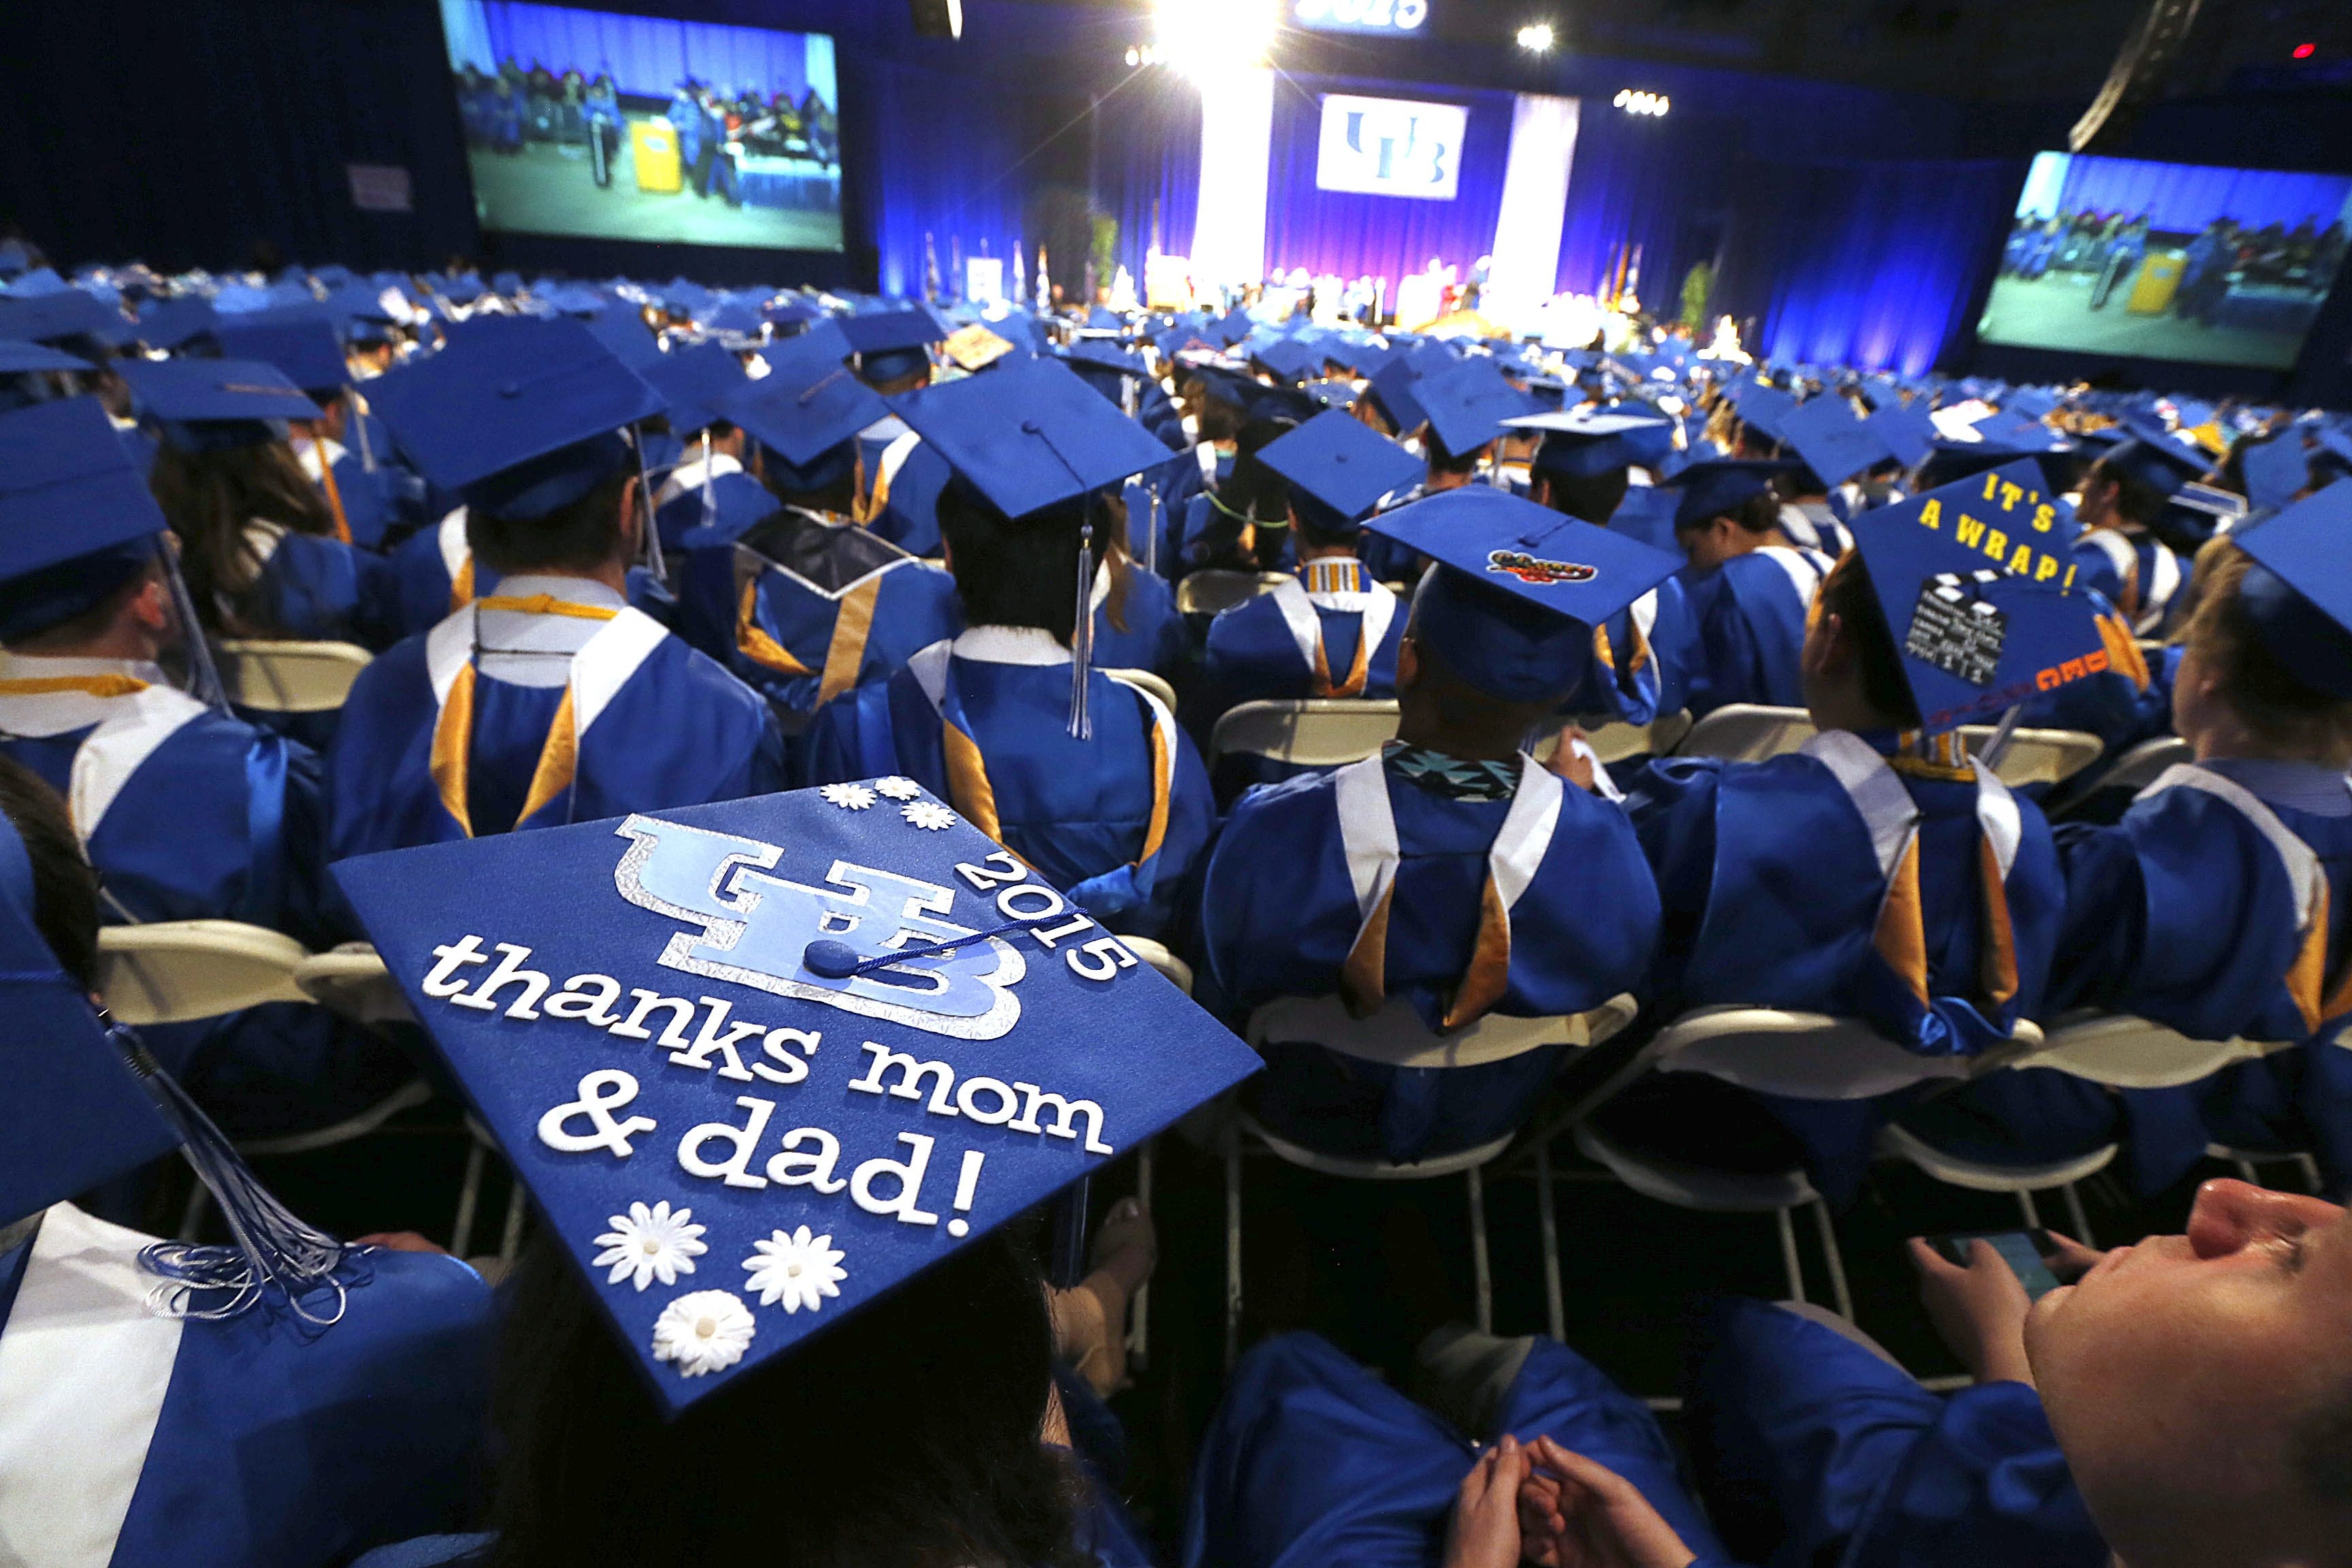 "One mortarboard sends a ""thanks mom & dad!"" message as 1,300 UB graduates receive degrees in Alumni Arena on North Campus."